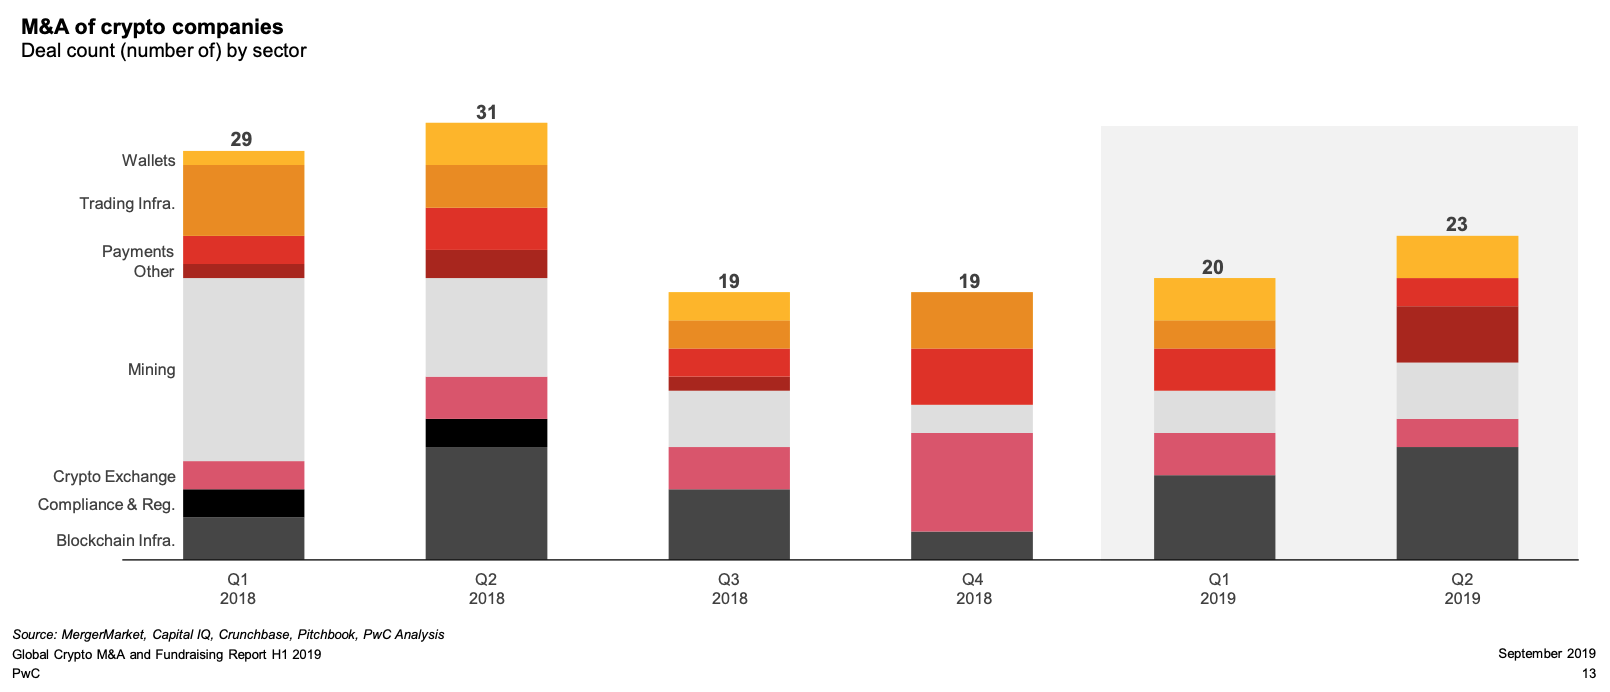 M&A of crypto companies, Deal count by sector, PwC, September 2019